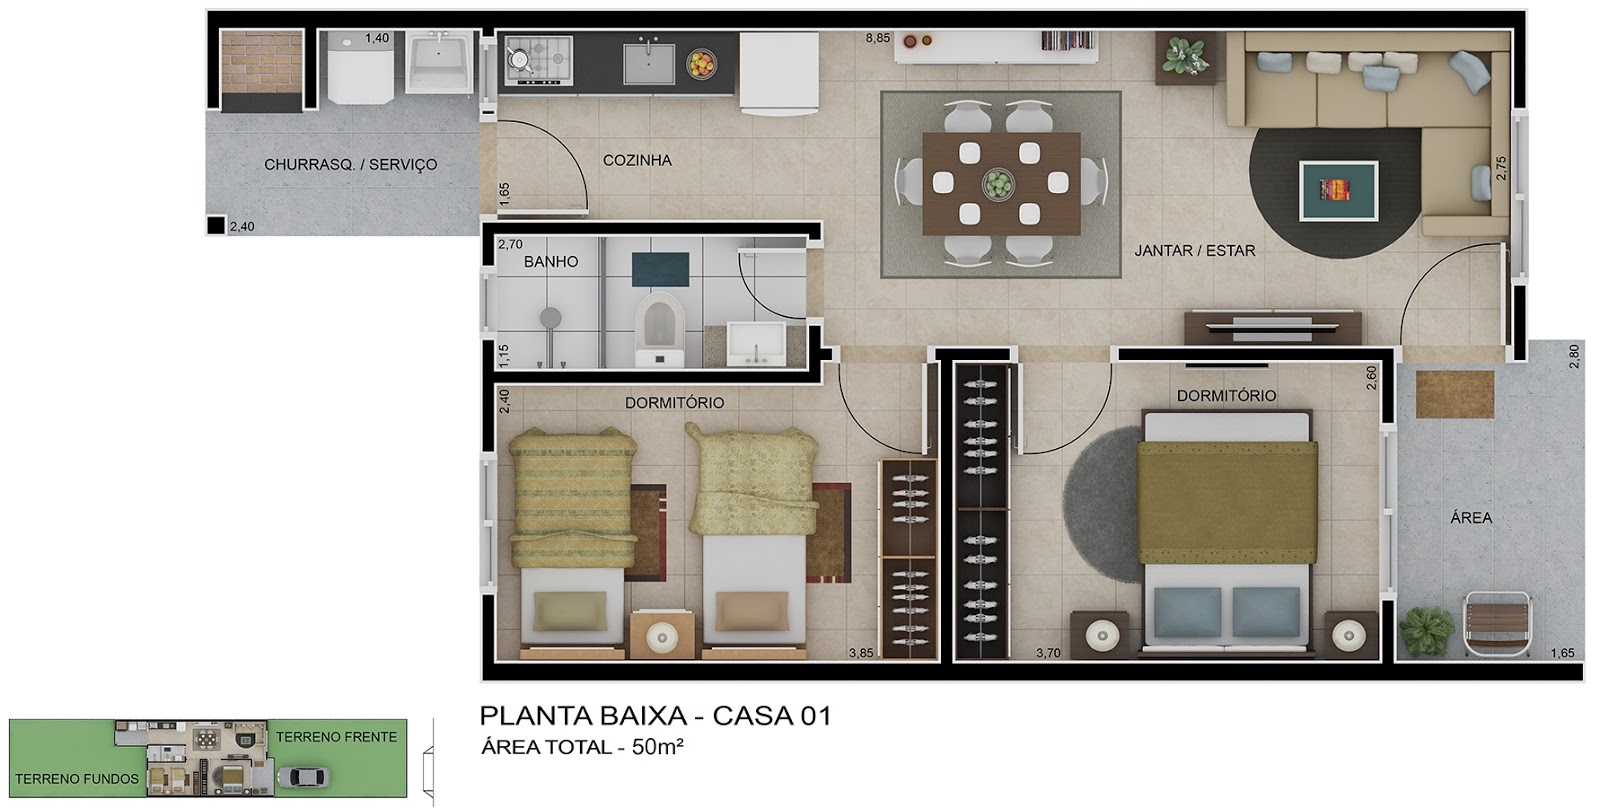 Floorplans moreover 3D Room Drawing additionally 10 Ideas One Bedroom Apartment Floor Plans further Floor Plans furthermore Reformas Y Conversiones A Loft. on small studio apartment floor plans 3d